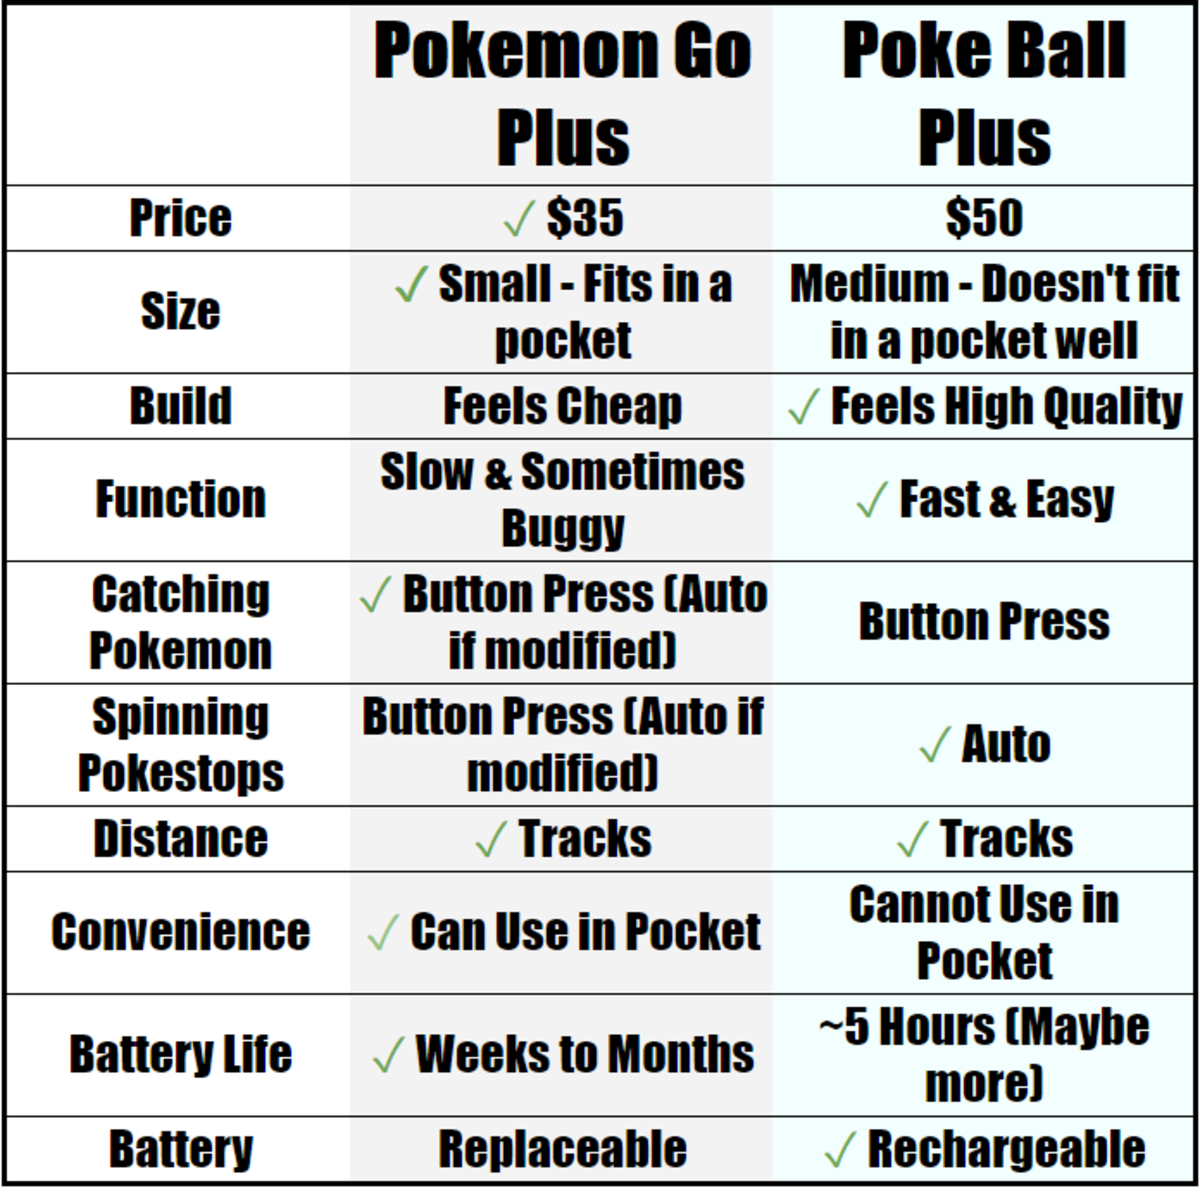 How does the Poke Ball Plus stack up against the Pokemon Go Plus?